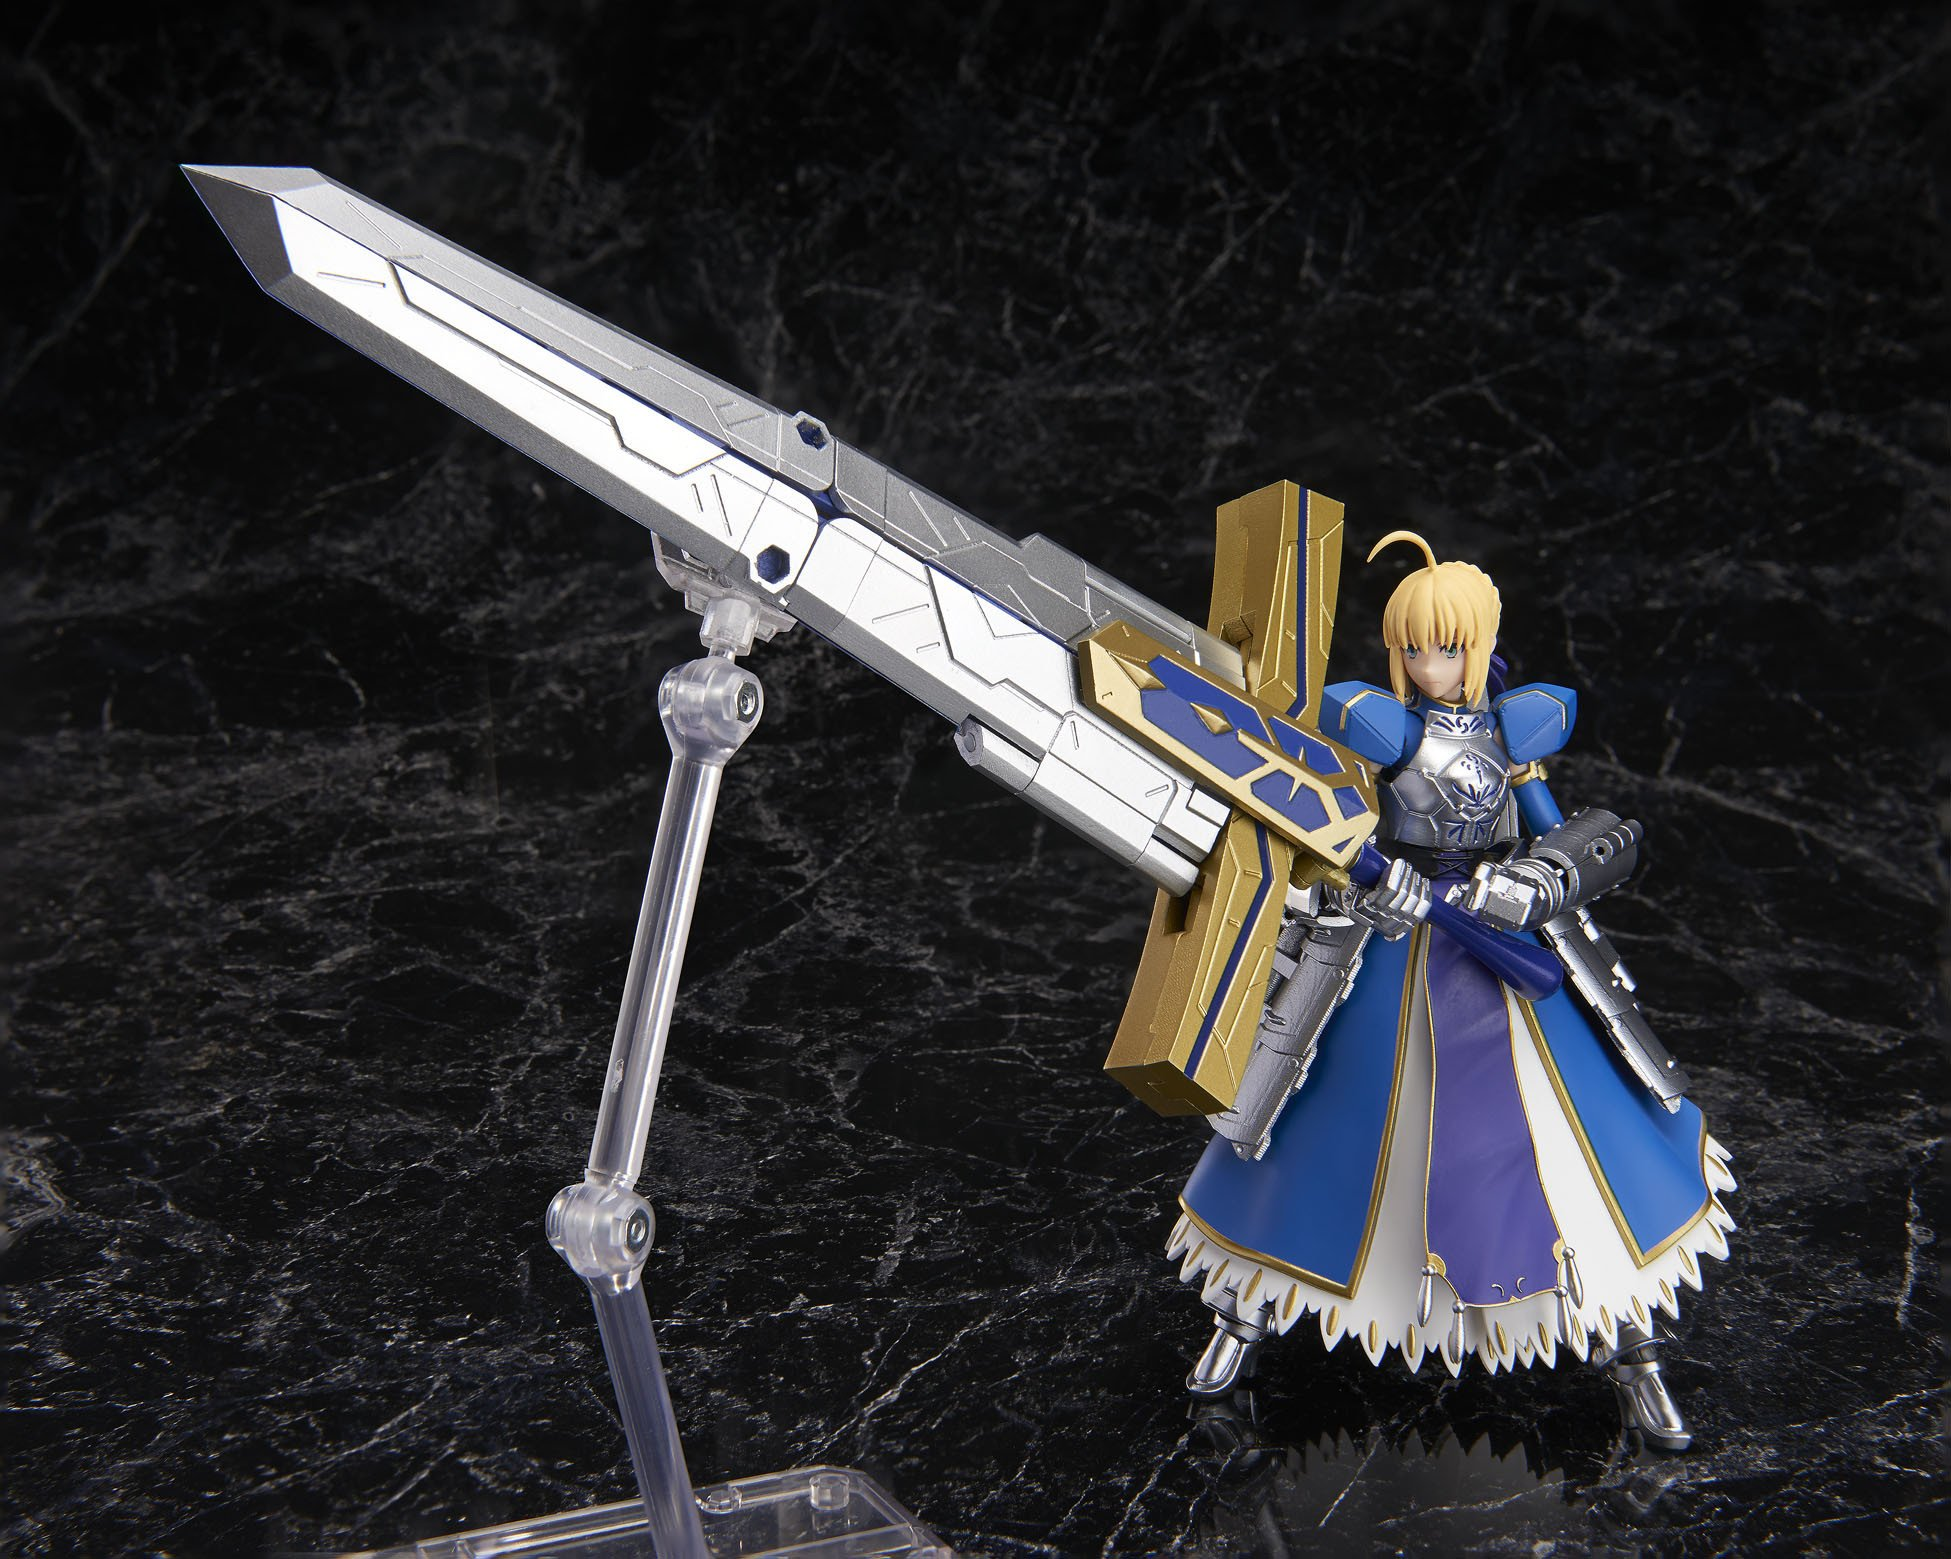 Bandai Armor Girls Project Saber Arturia Pendragon & Variable Excalibur Fate Grand Order Action Figure by